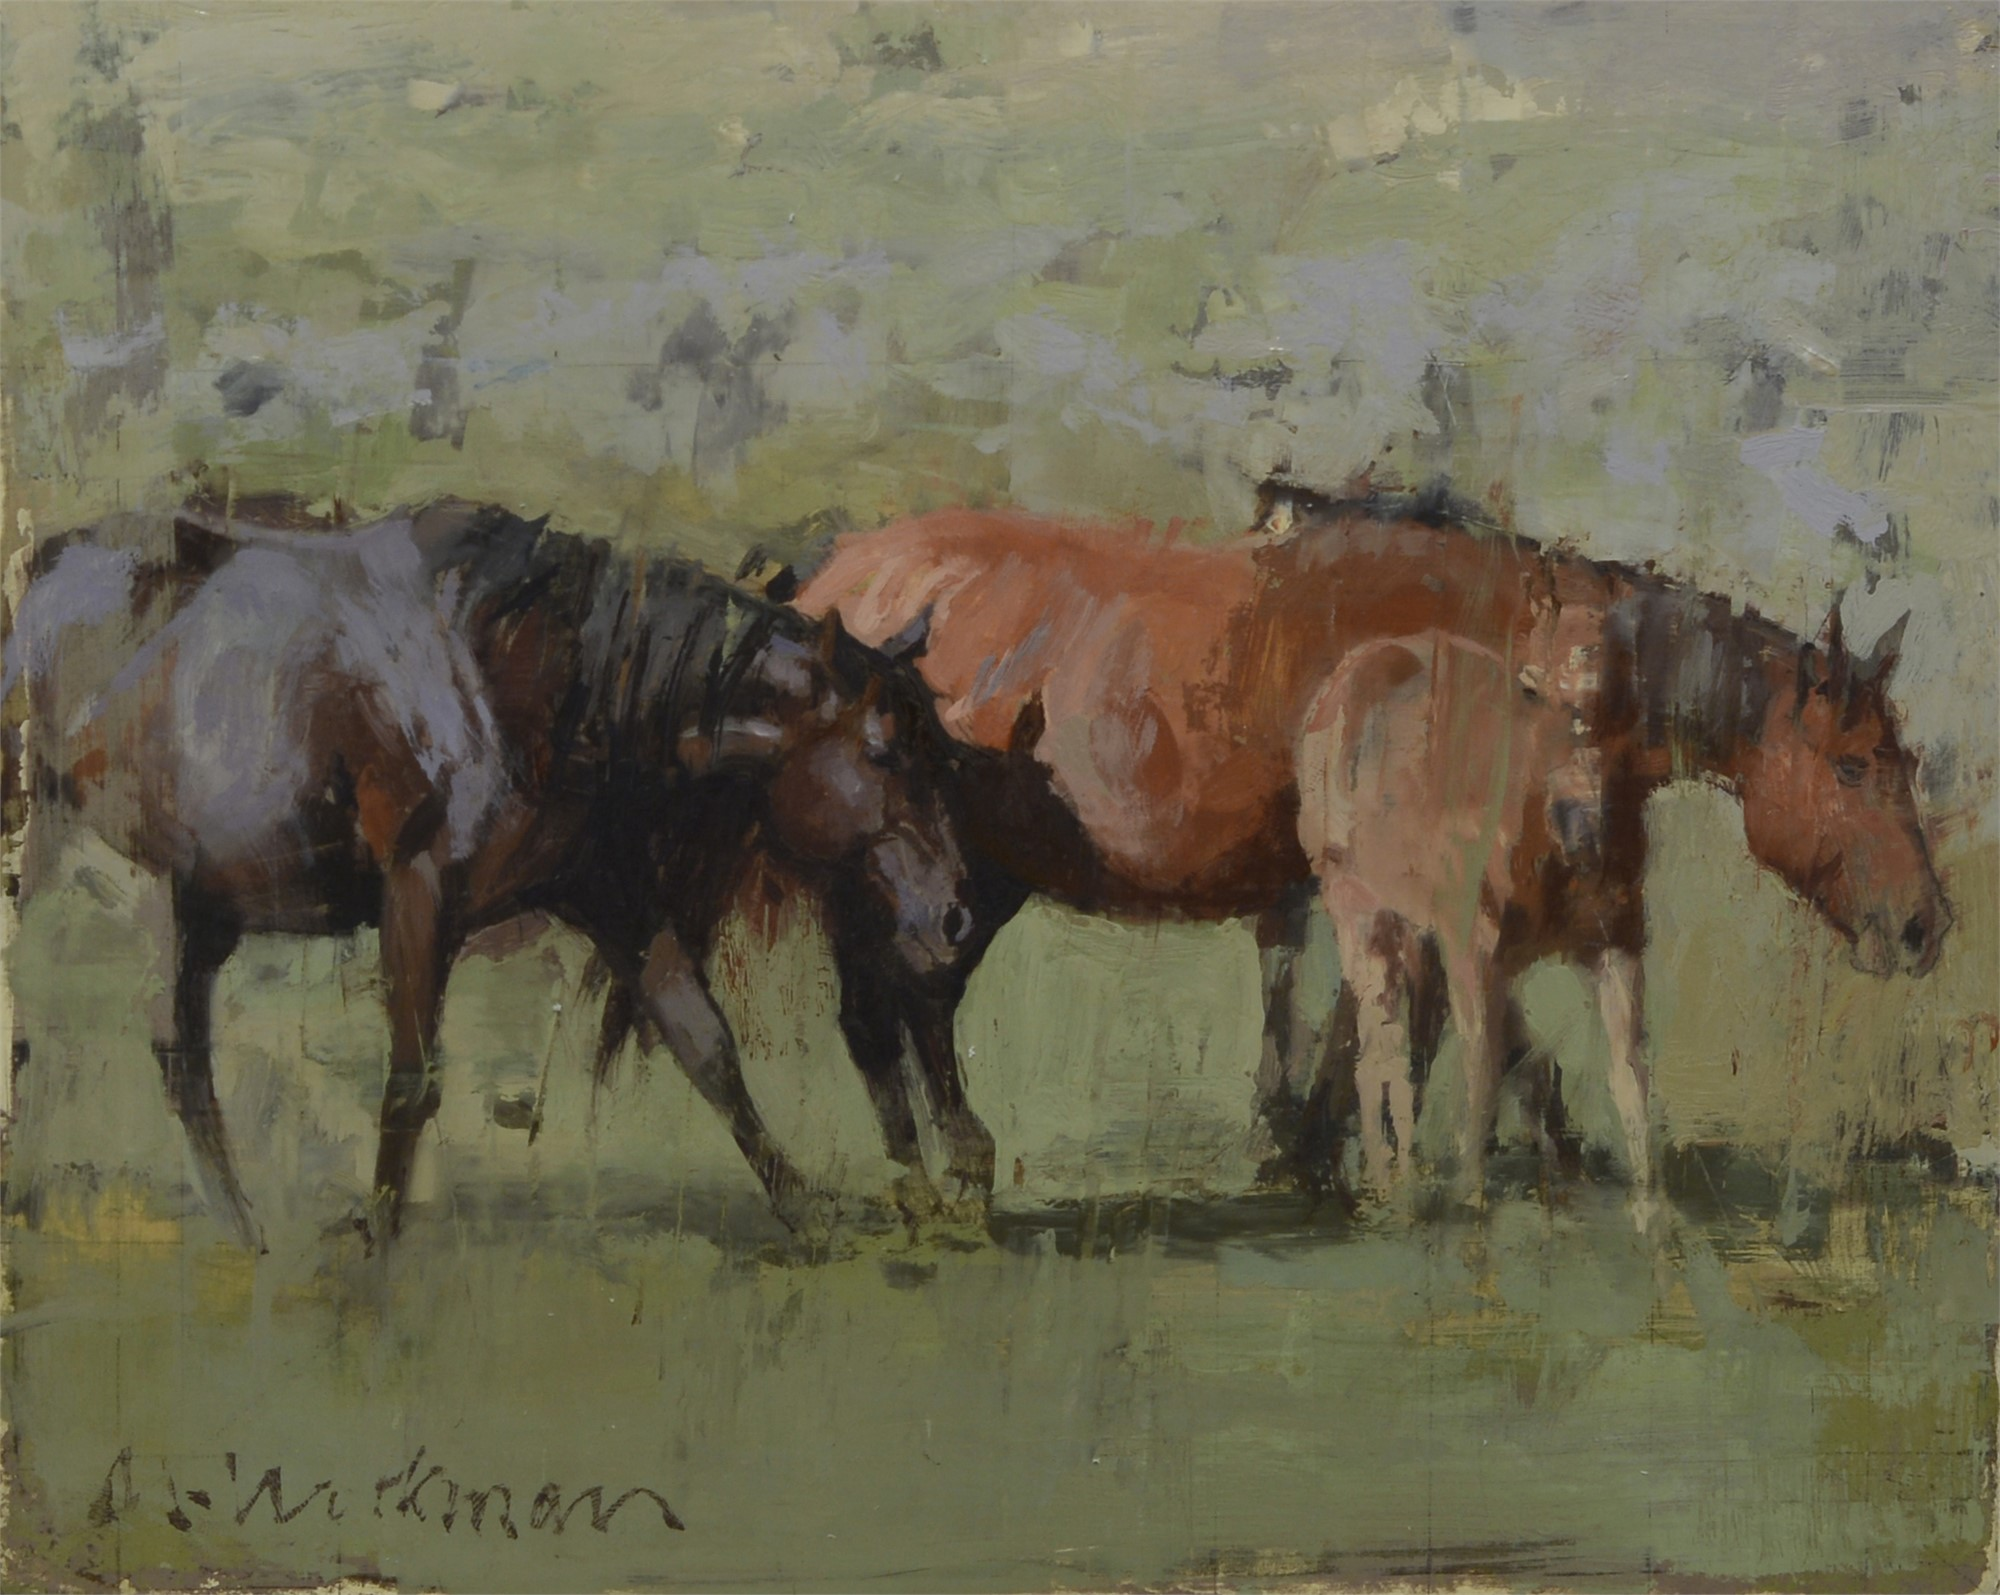 Sketch of Two Mares and a Foal by Michael Workman